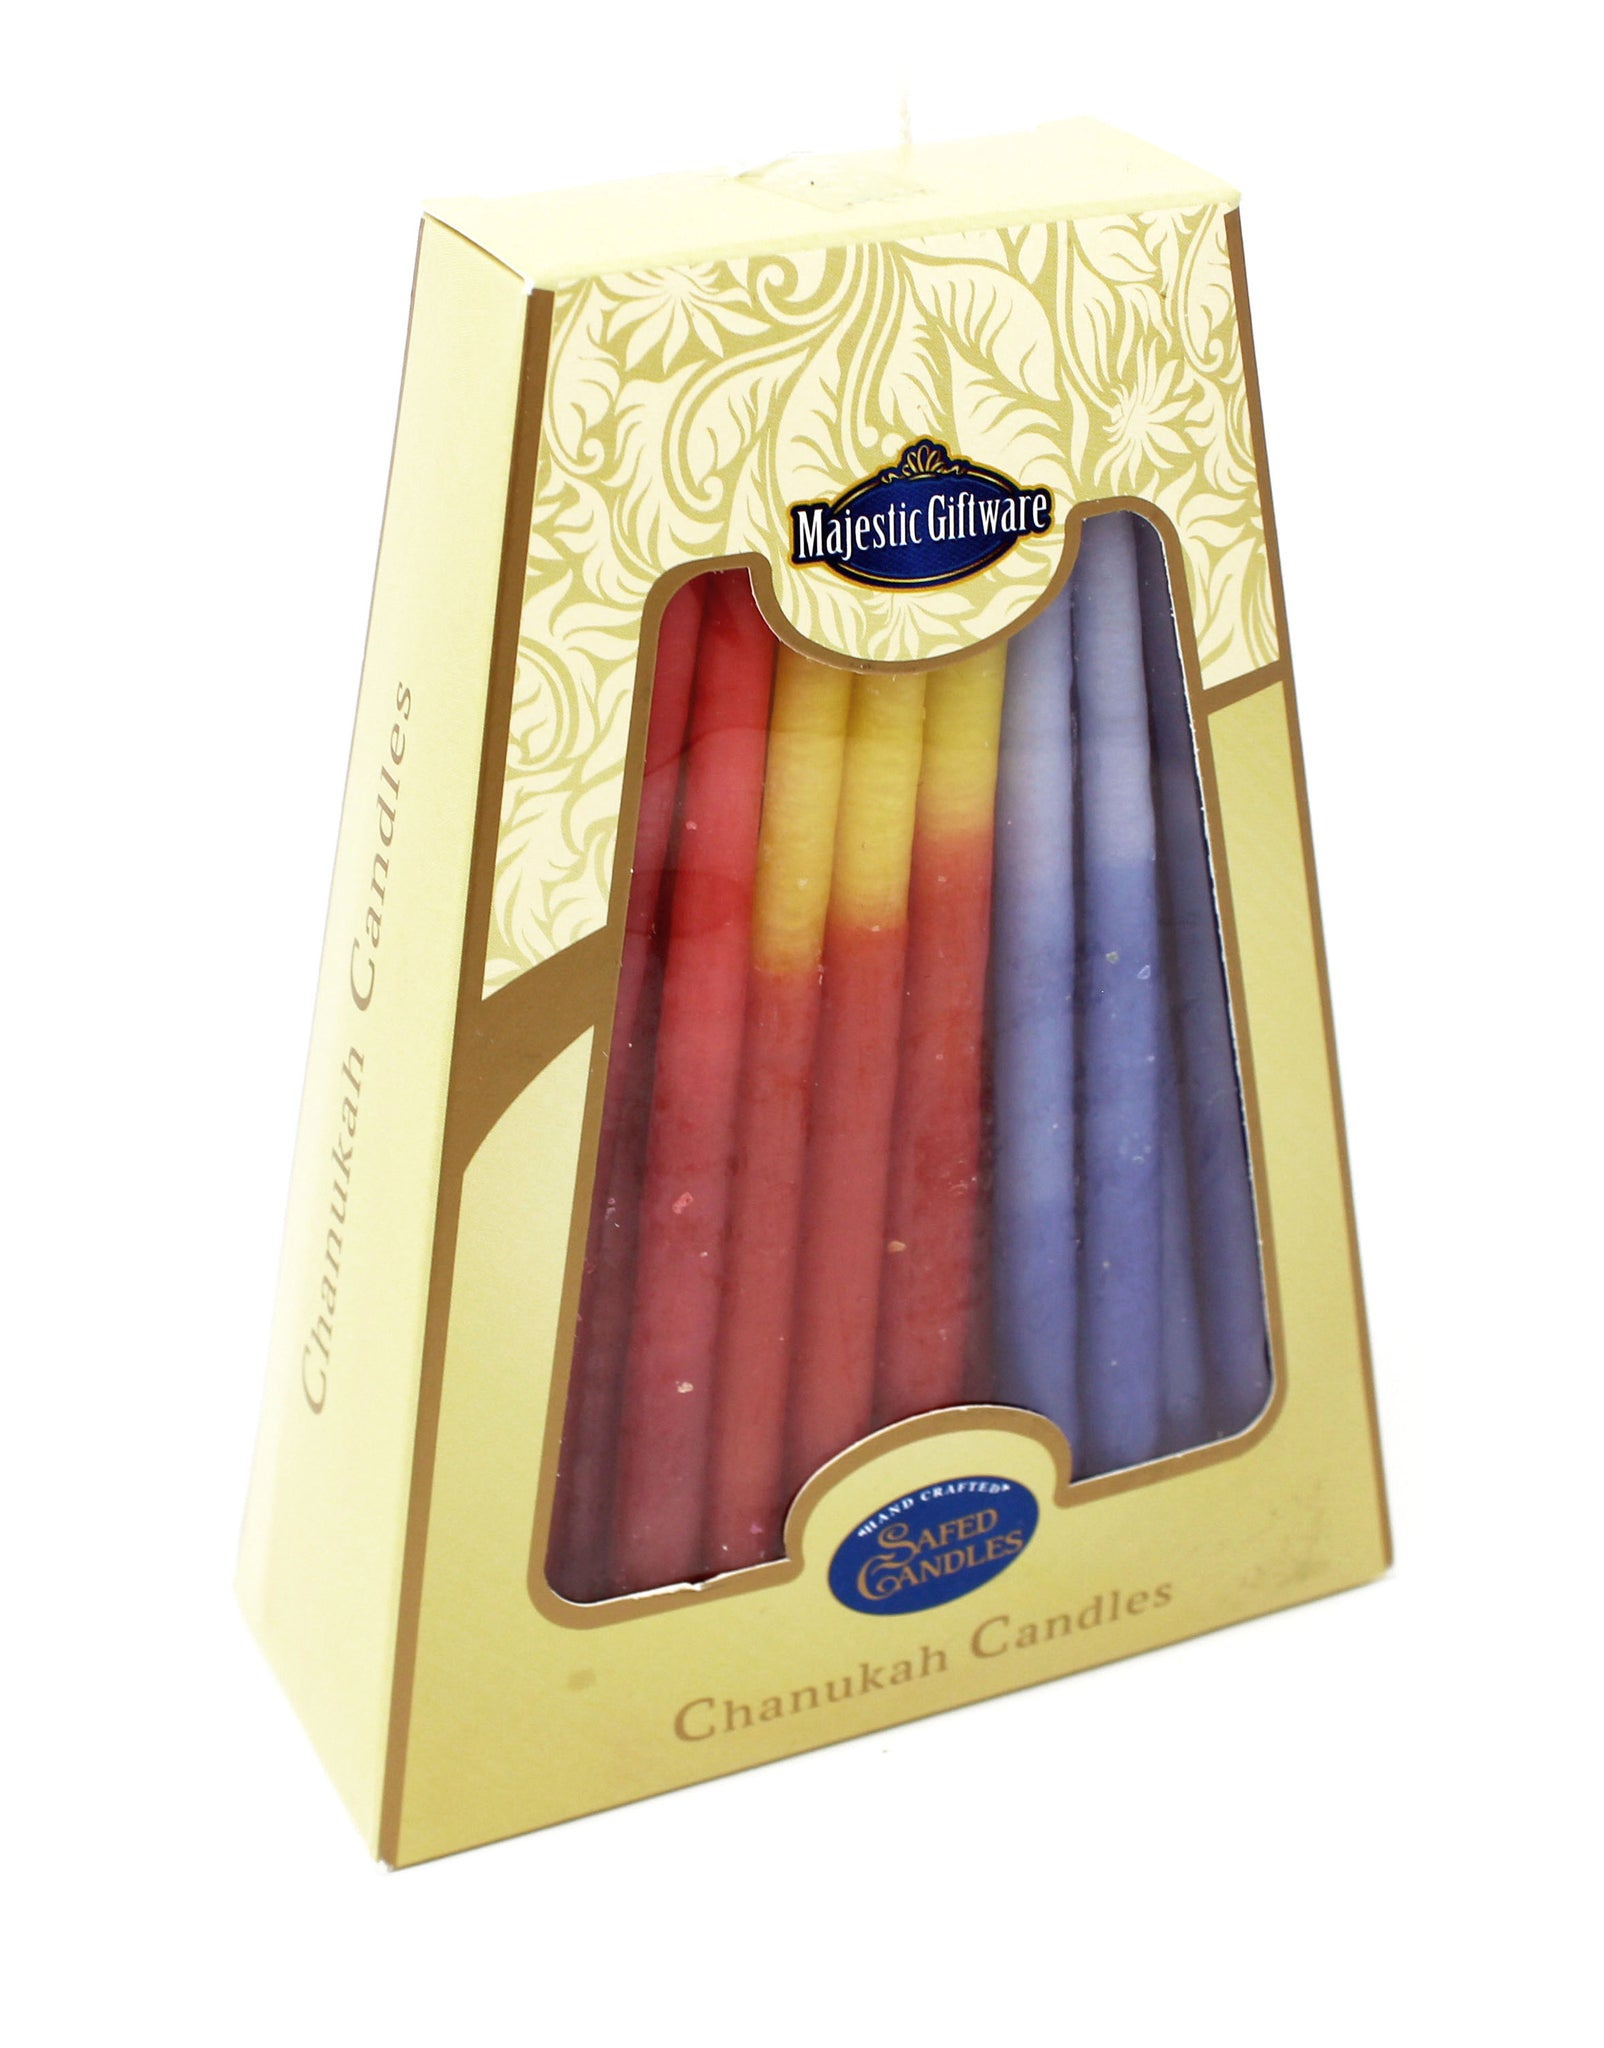 Safed Multicolored Chanukah Candles